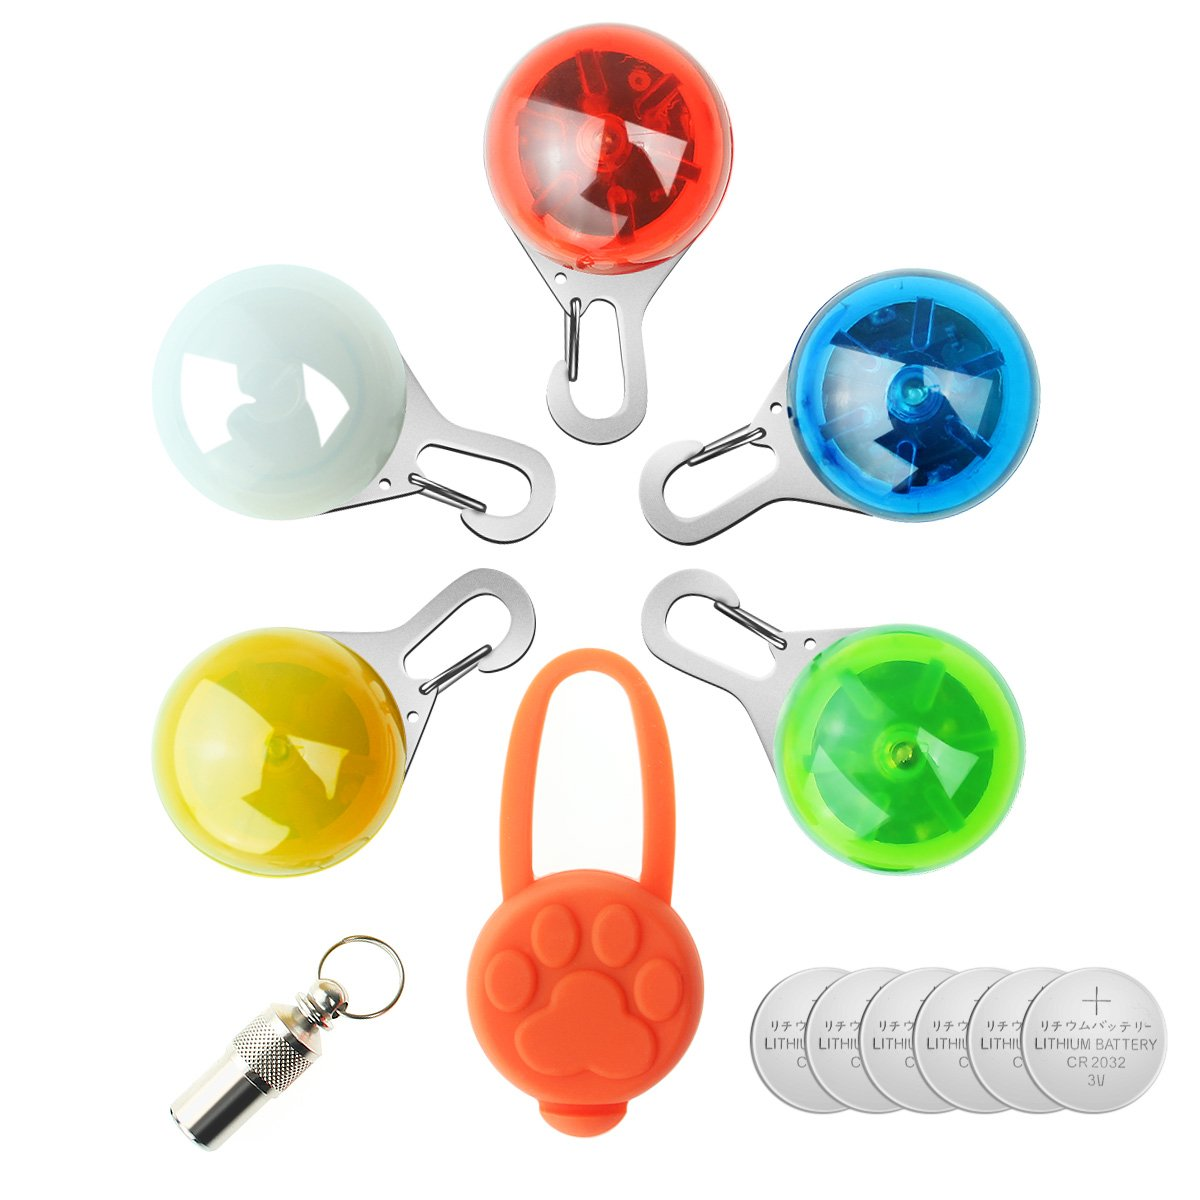 Bright 6pcs Colorful Clip-on Safety Night Light Pet Collar Keychain Light Led Waterproof Safety Night Walking Lights For Dogs And Cats Aesthetic Appearance Security & Protection